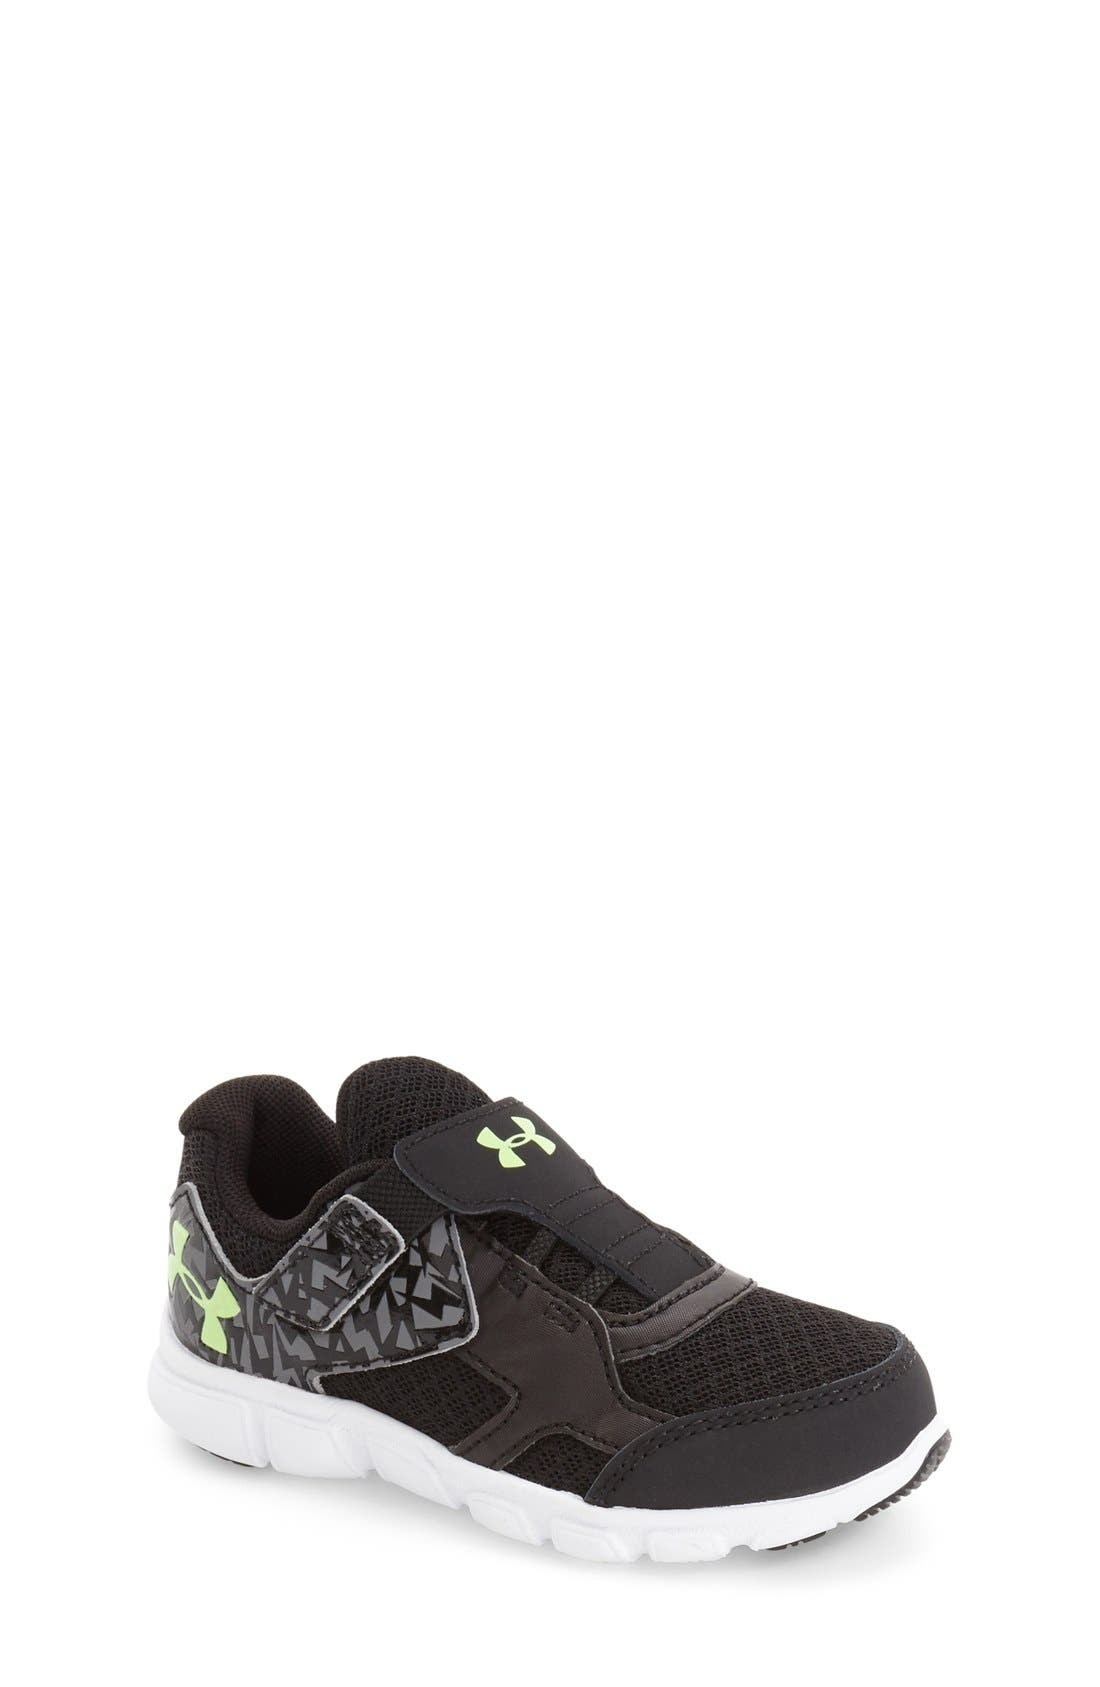 Main Image - Under Armour Engage II Athletic Shoe (Walker & Toddler)